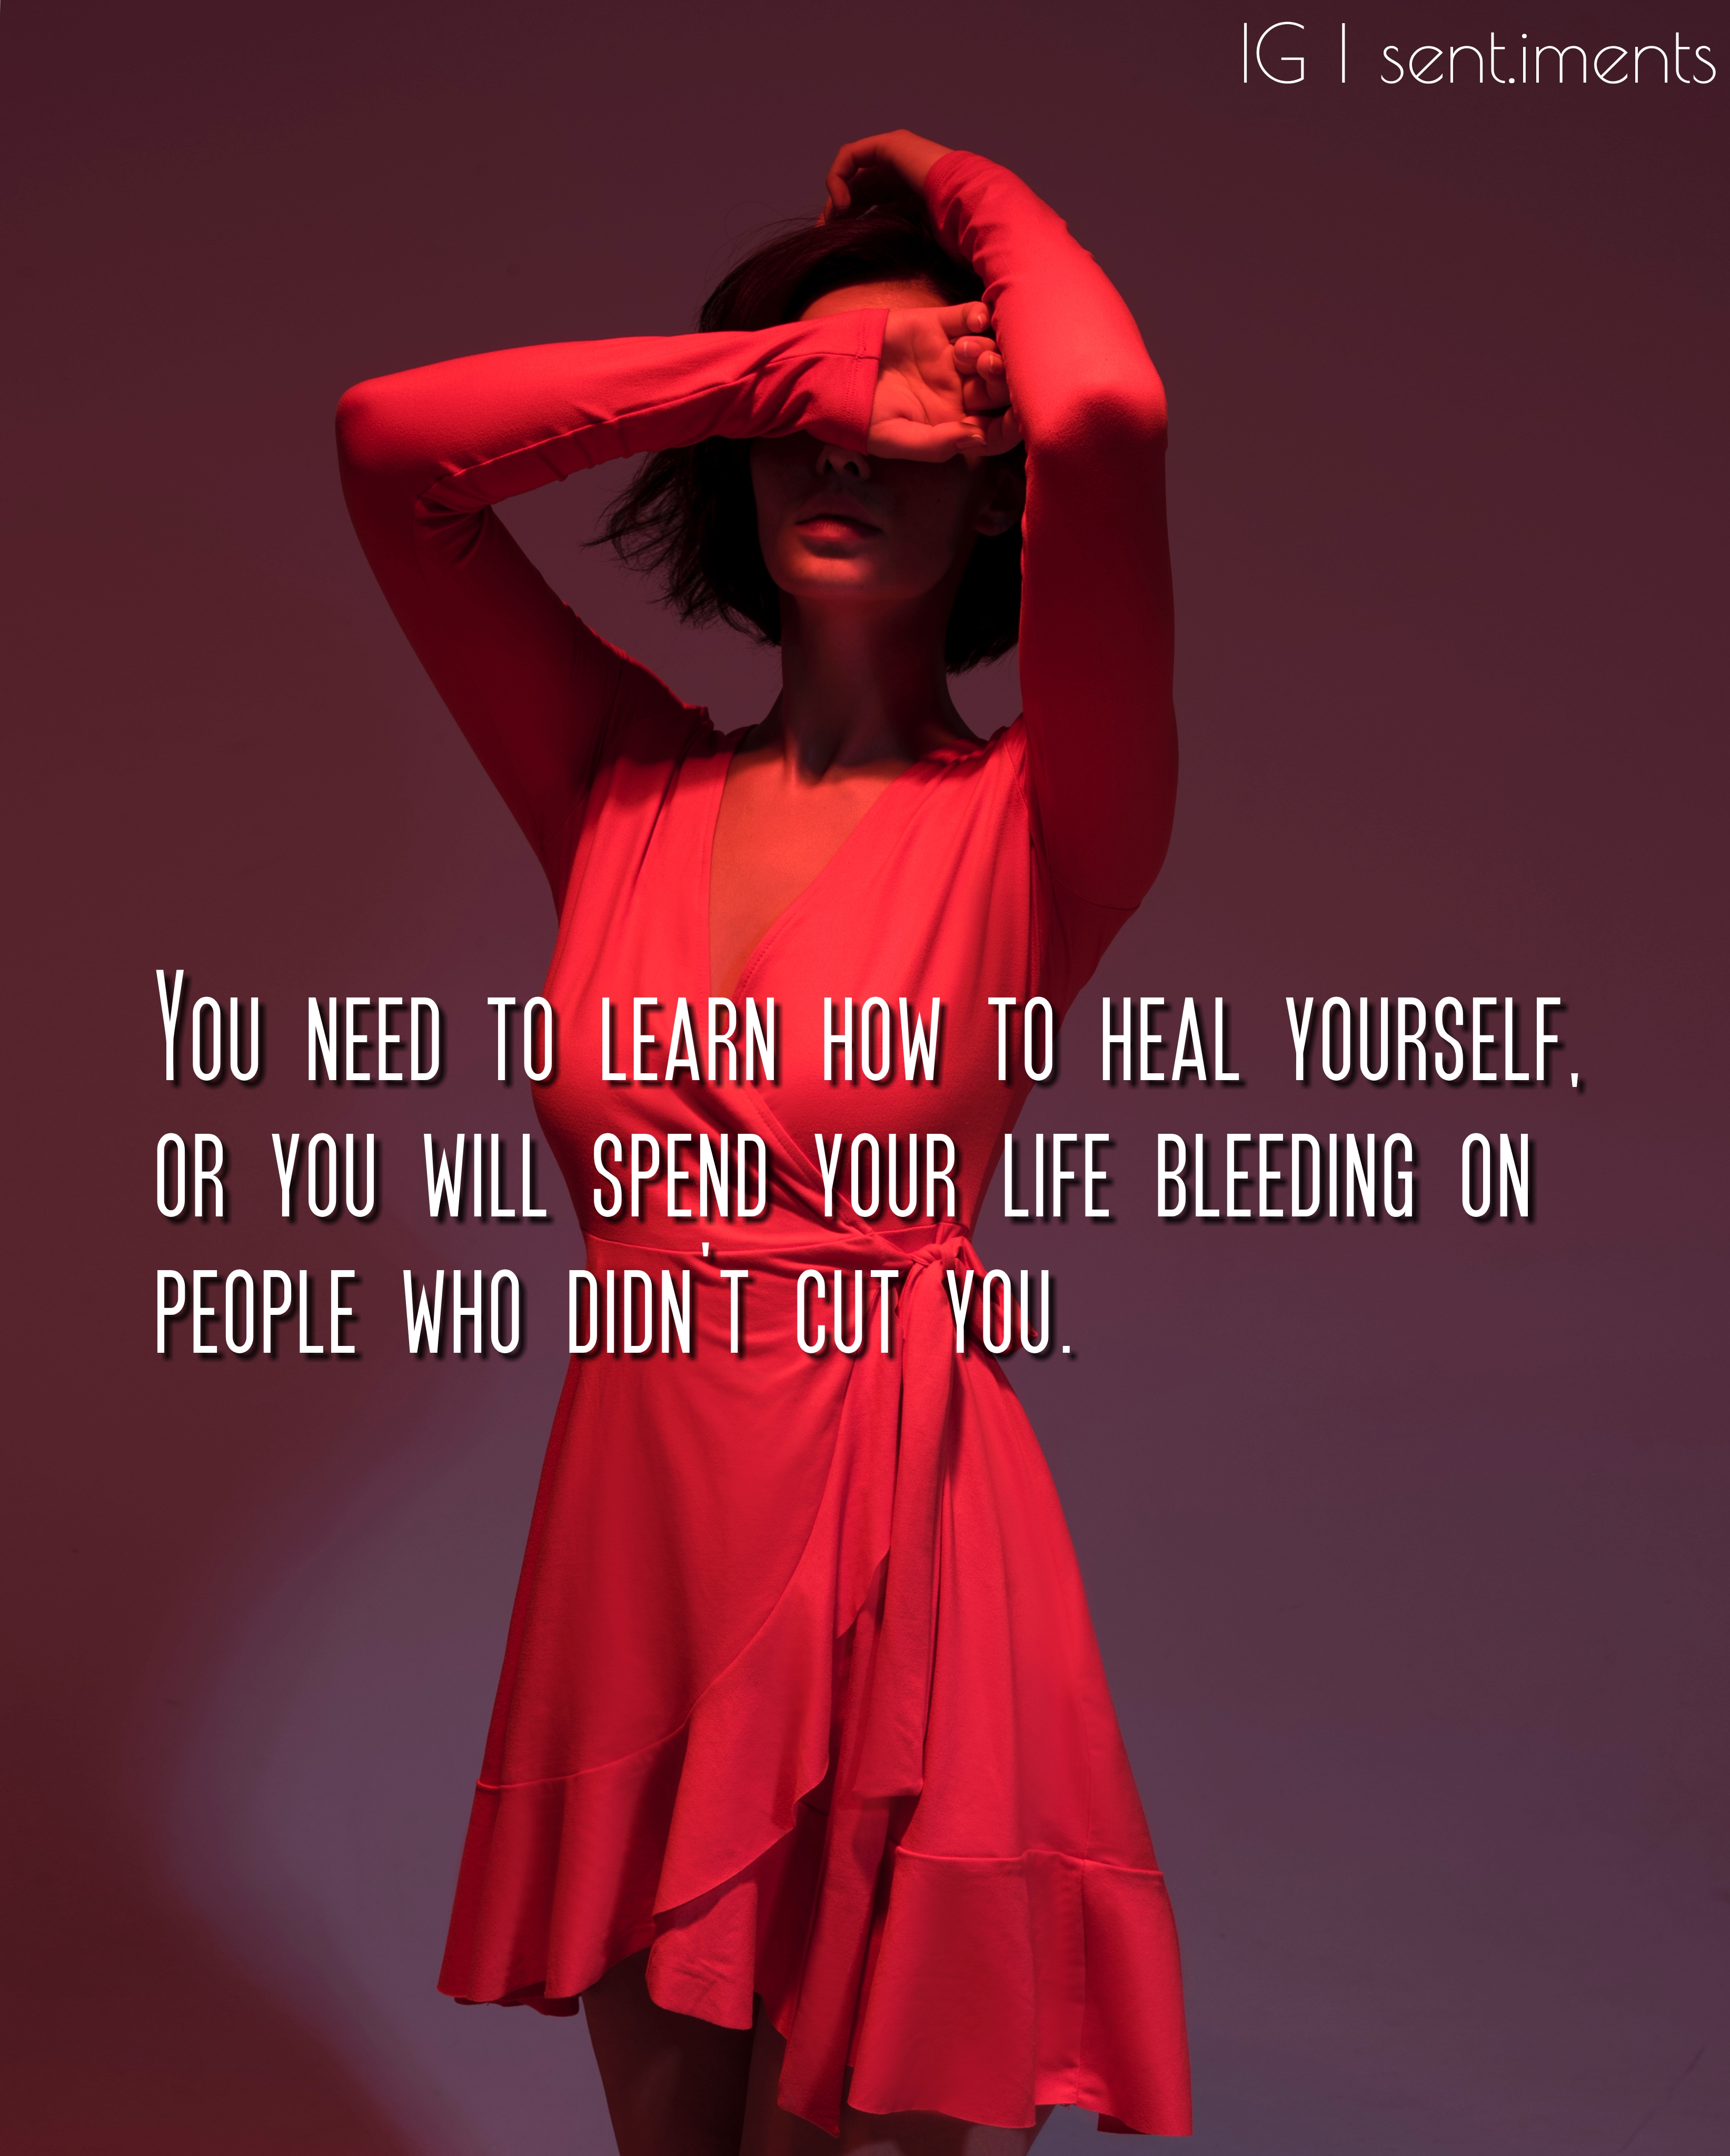 """You need to learn how to heal yourself, or you will spend your life bleeding on people who didn't cut you"" by Unknown [3286 X 4096]"